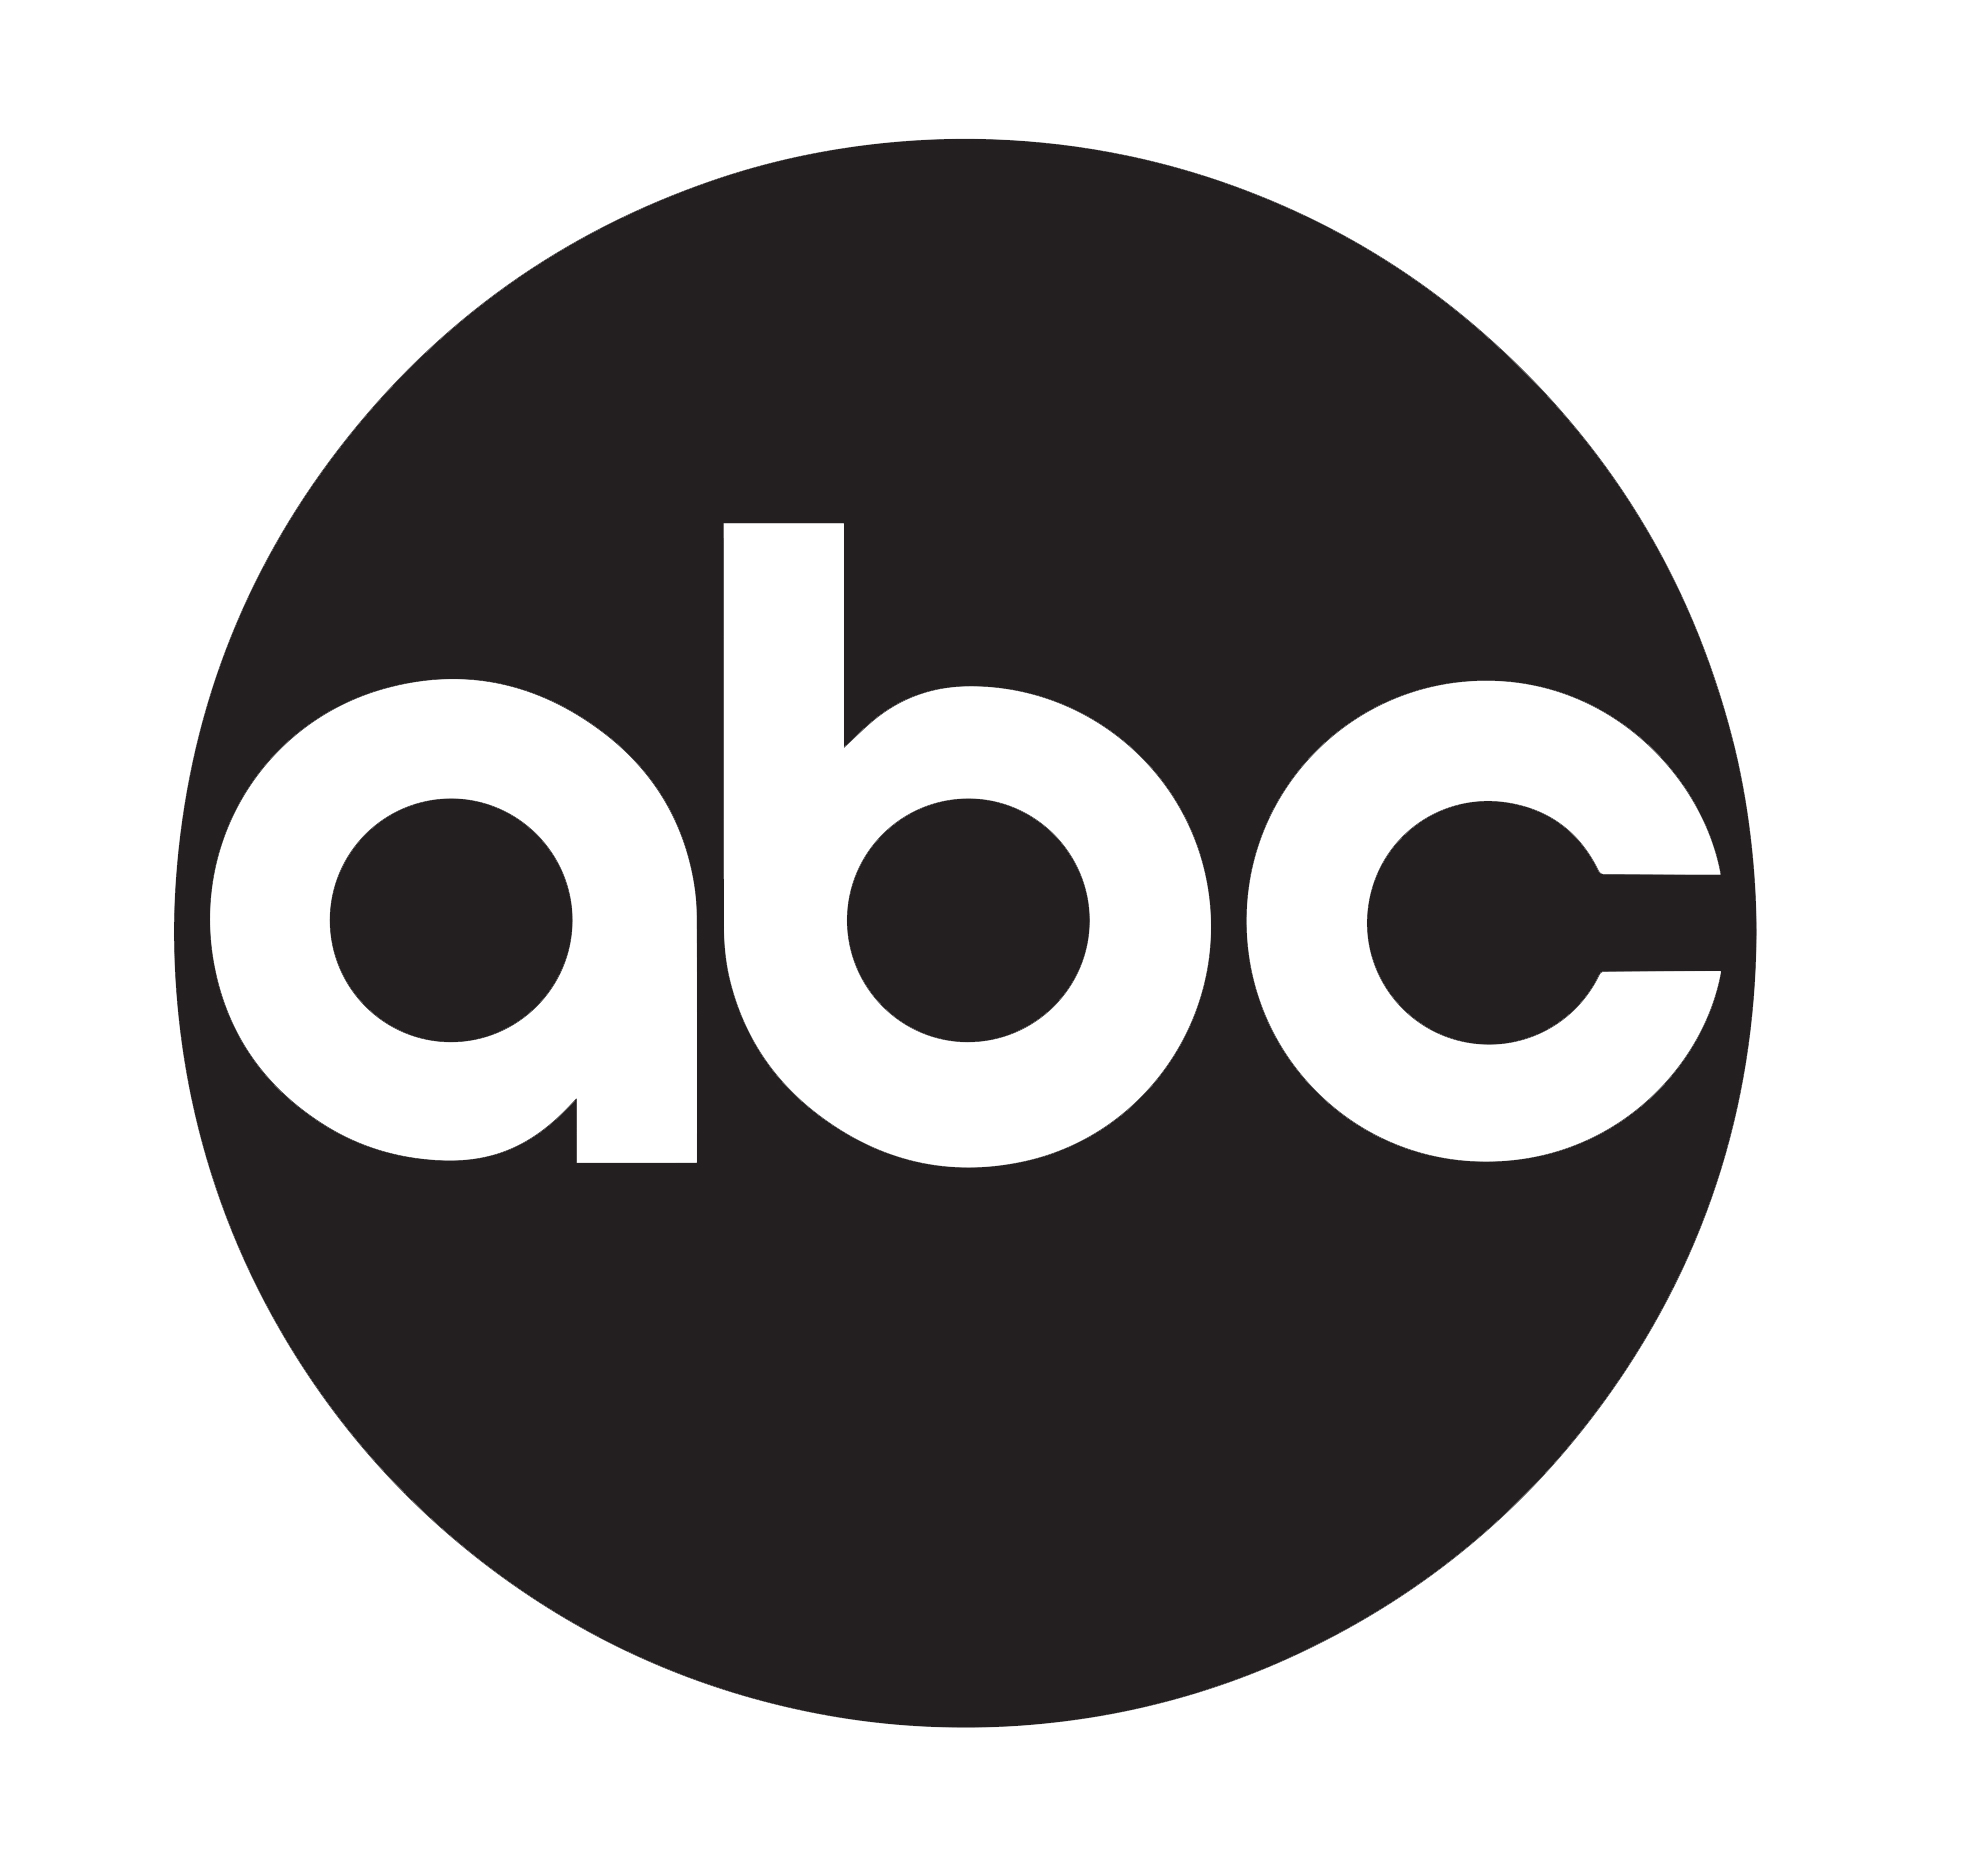 Directors clipart images amp pictures becuo - Abc News